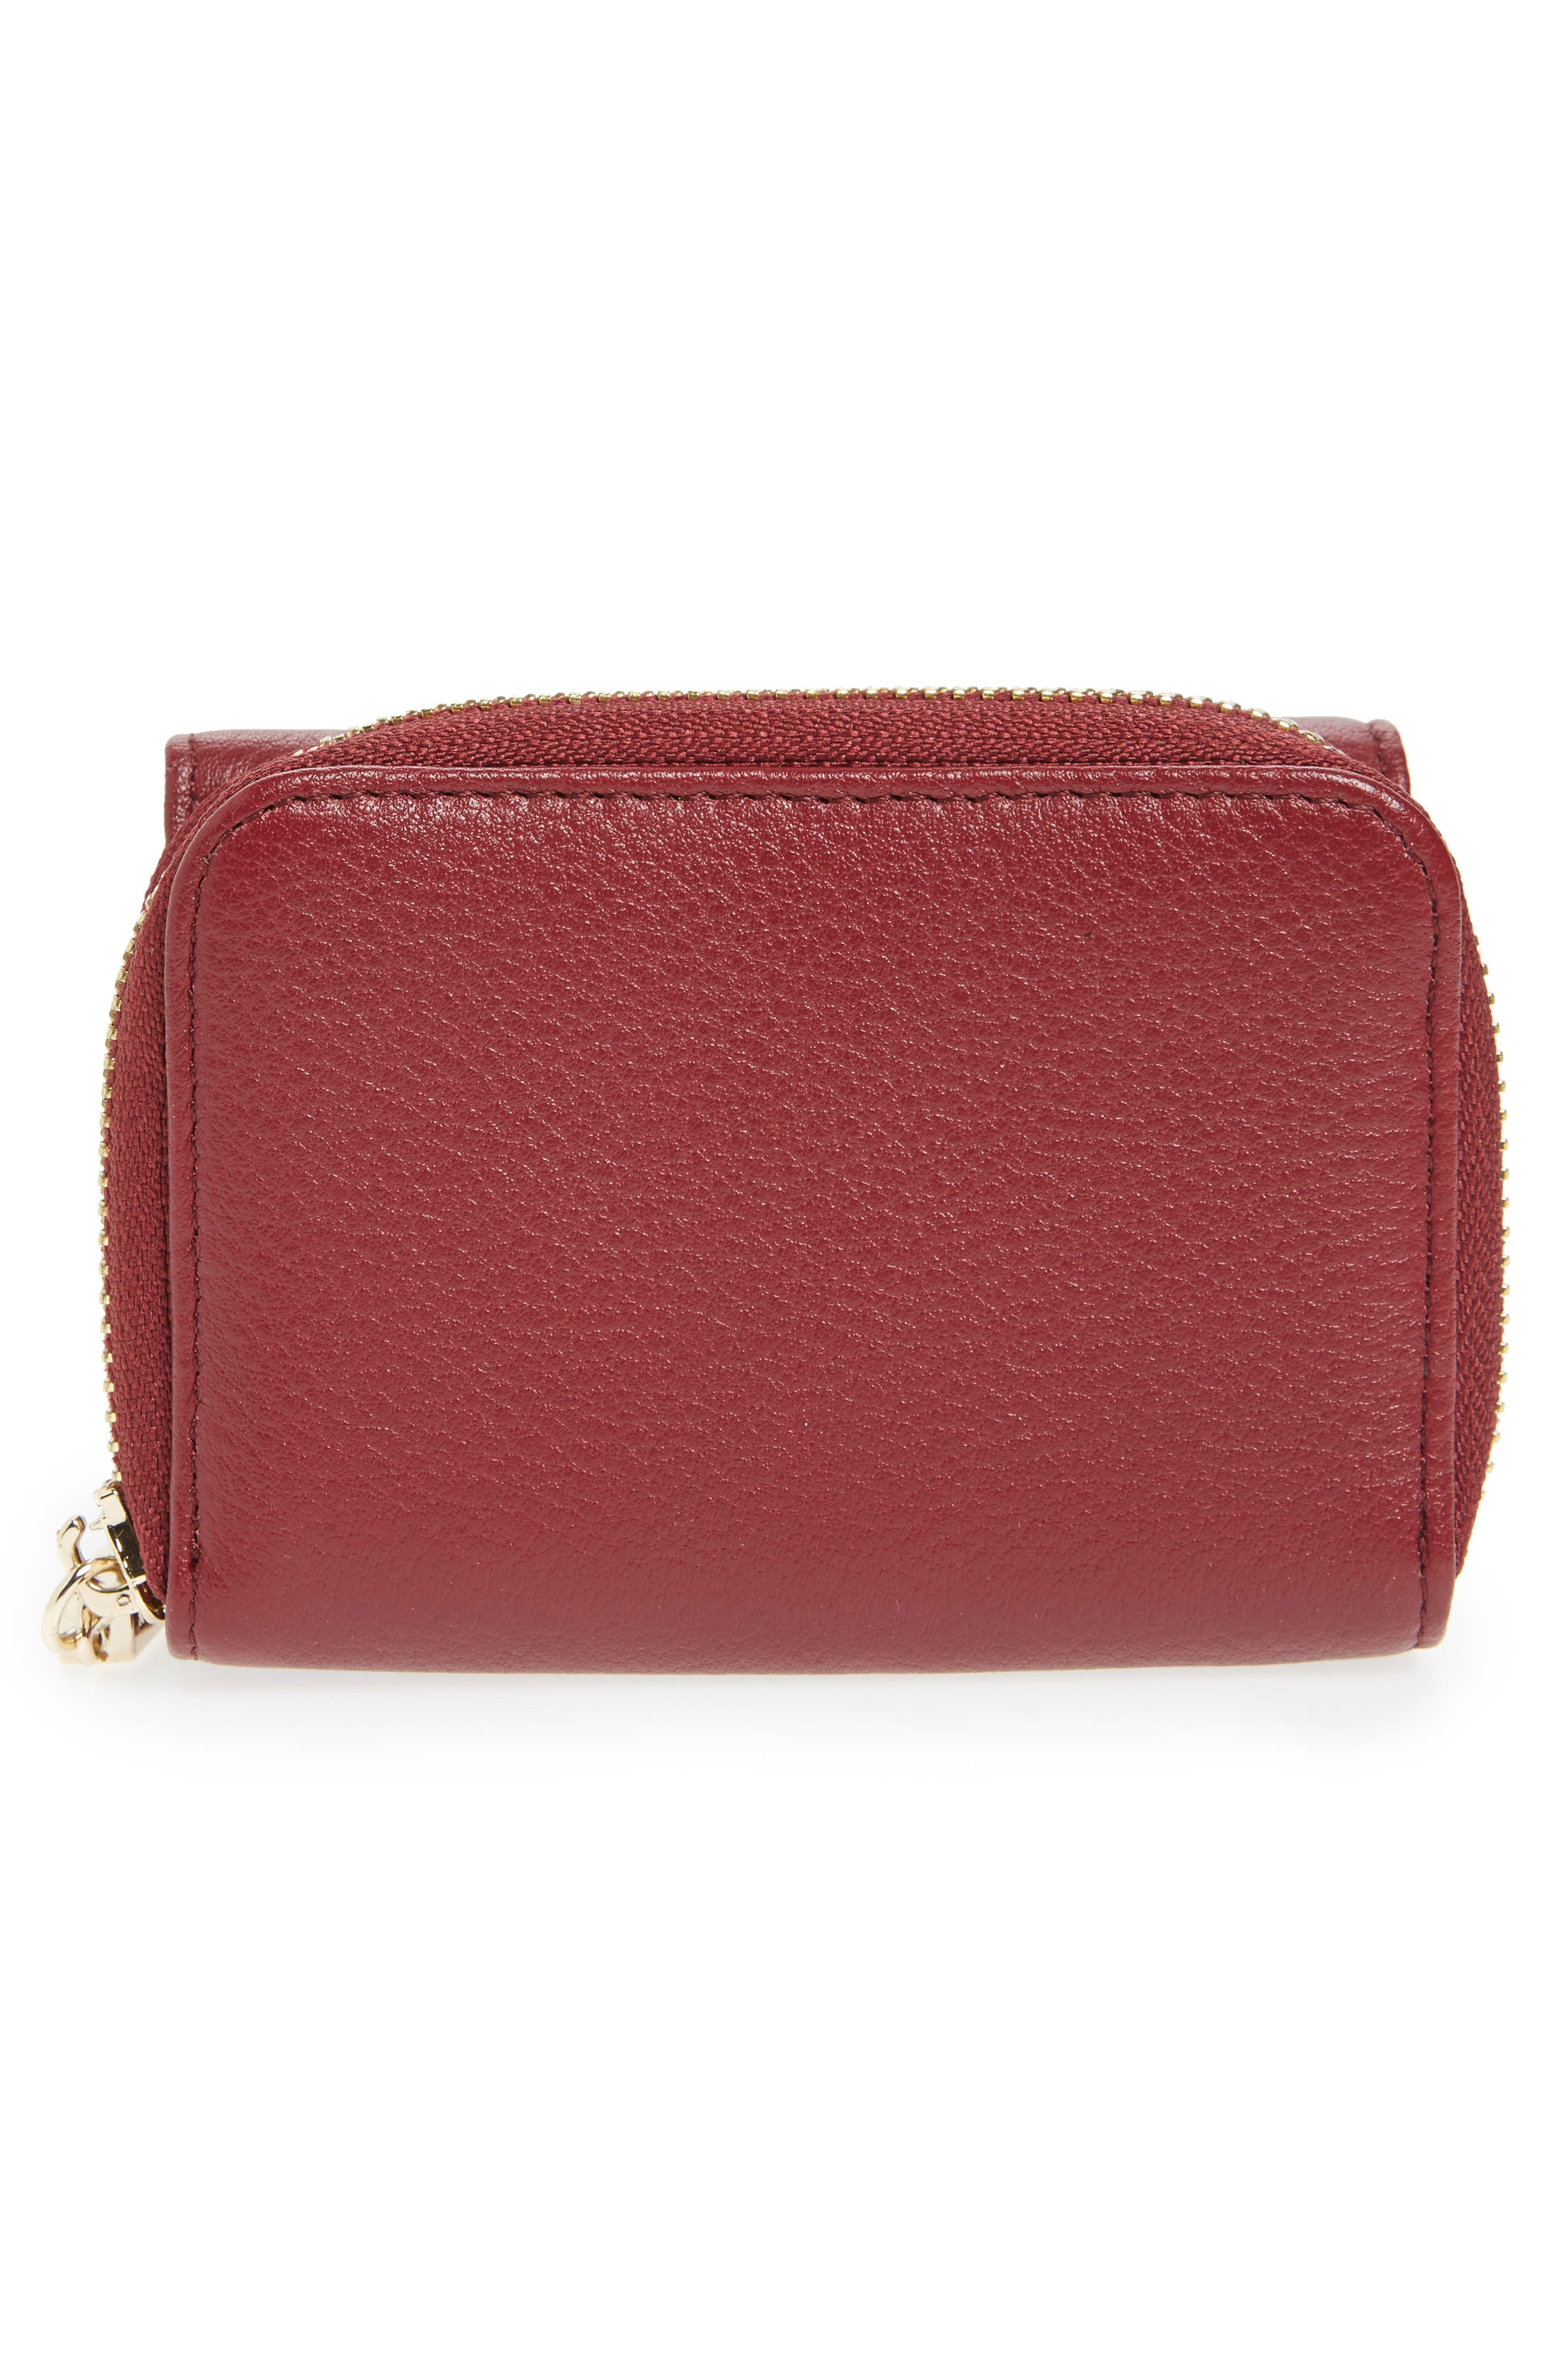 Céline Dion Small Adagio Leather Wallet,                             Alternate thumbnail 16, color,